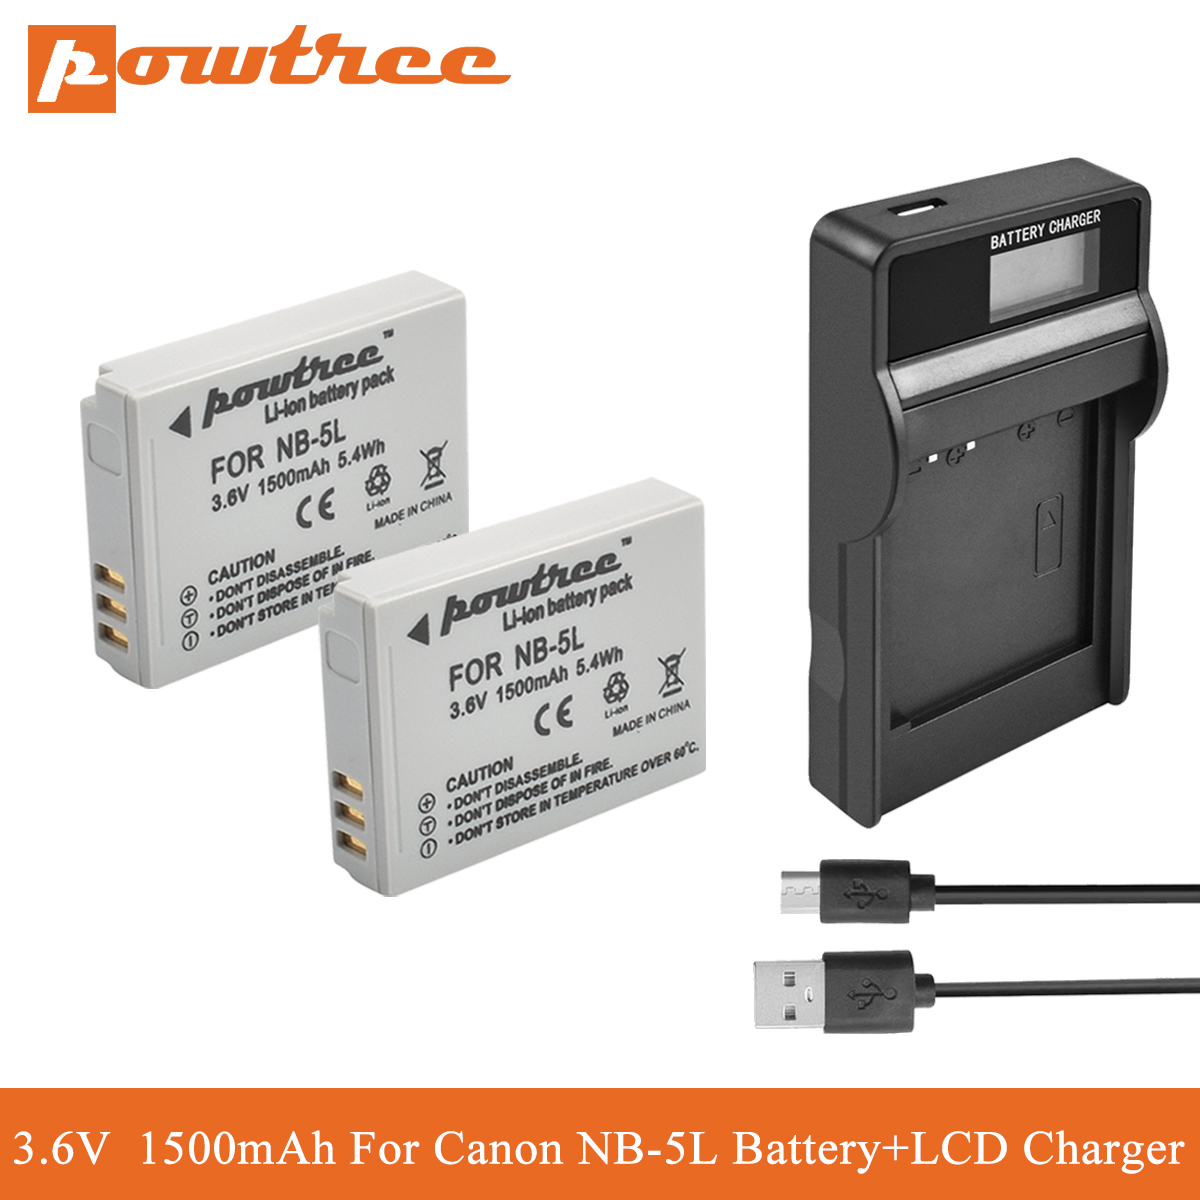 POWTREE for <font><b>canon</b></font> NB-5L NB5L NB 5L Camera <font><b>Battery</b></font>+LCD Charger For <font><b>Canon</b></font> SX220HS <font><b>SX230HS</b></font> CB-2LXE PowerShot S100 SD950 SD970 S110 image